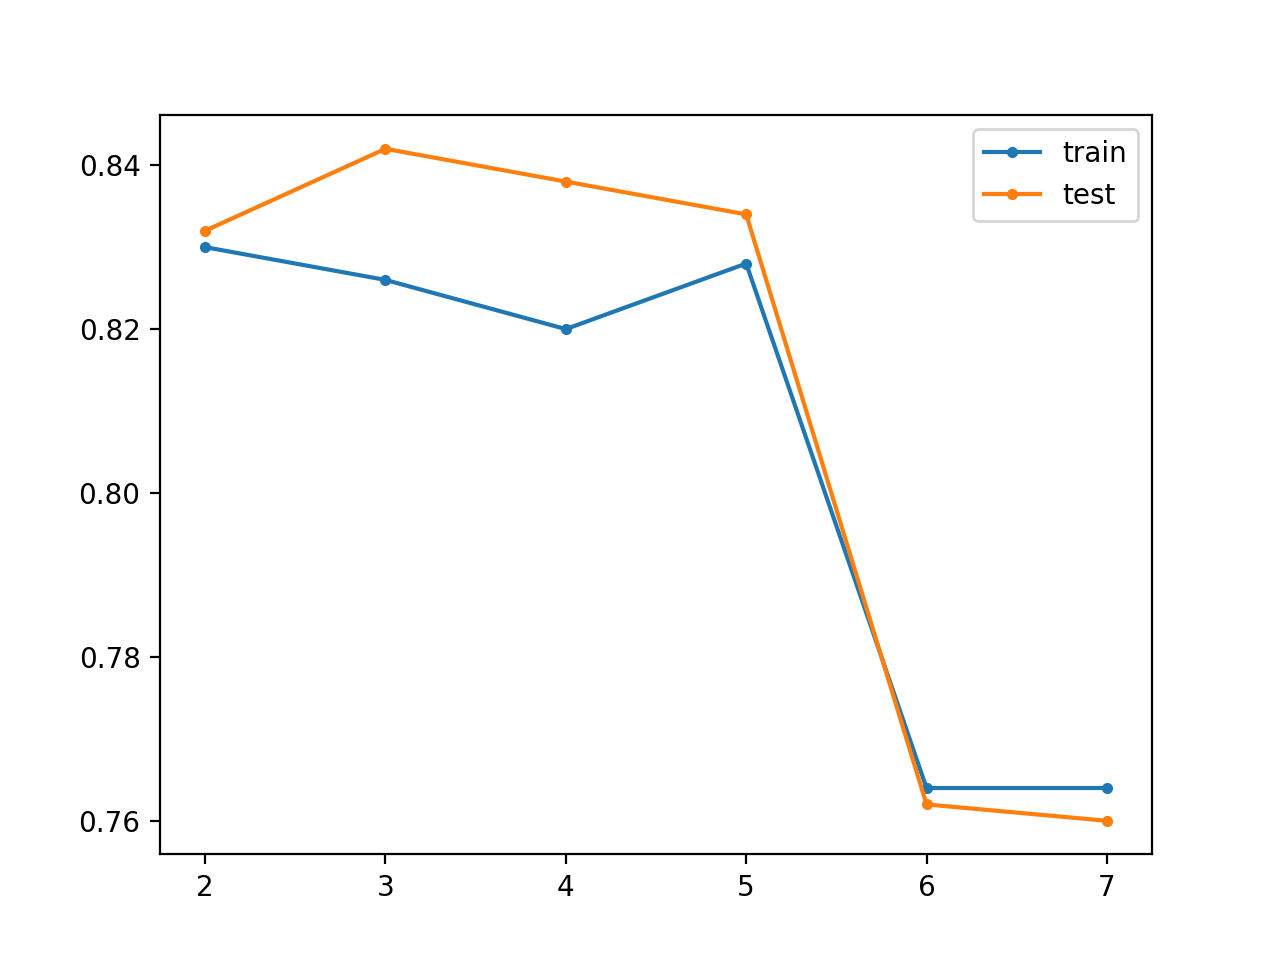 Line Plot for Unsupervised Greedy Layer-Wise Pretraining Showing Model Layers vs Train and Test Set Classification Accuracy on the Blobs Classification Problem